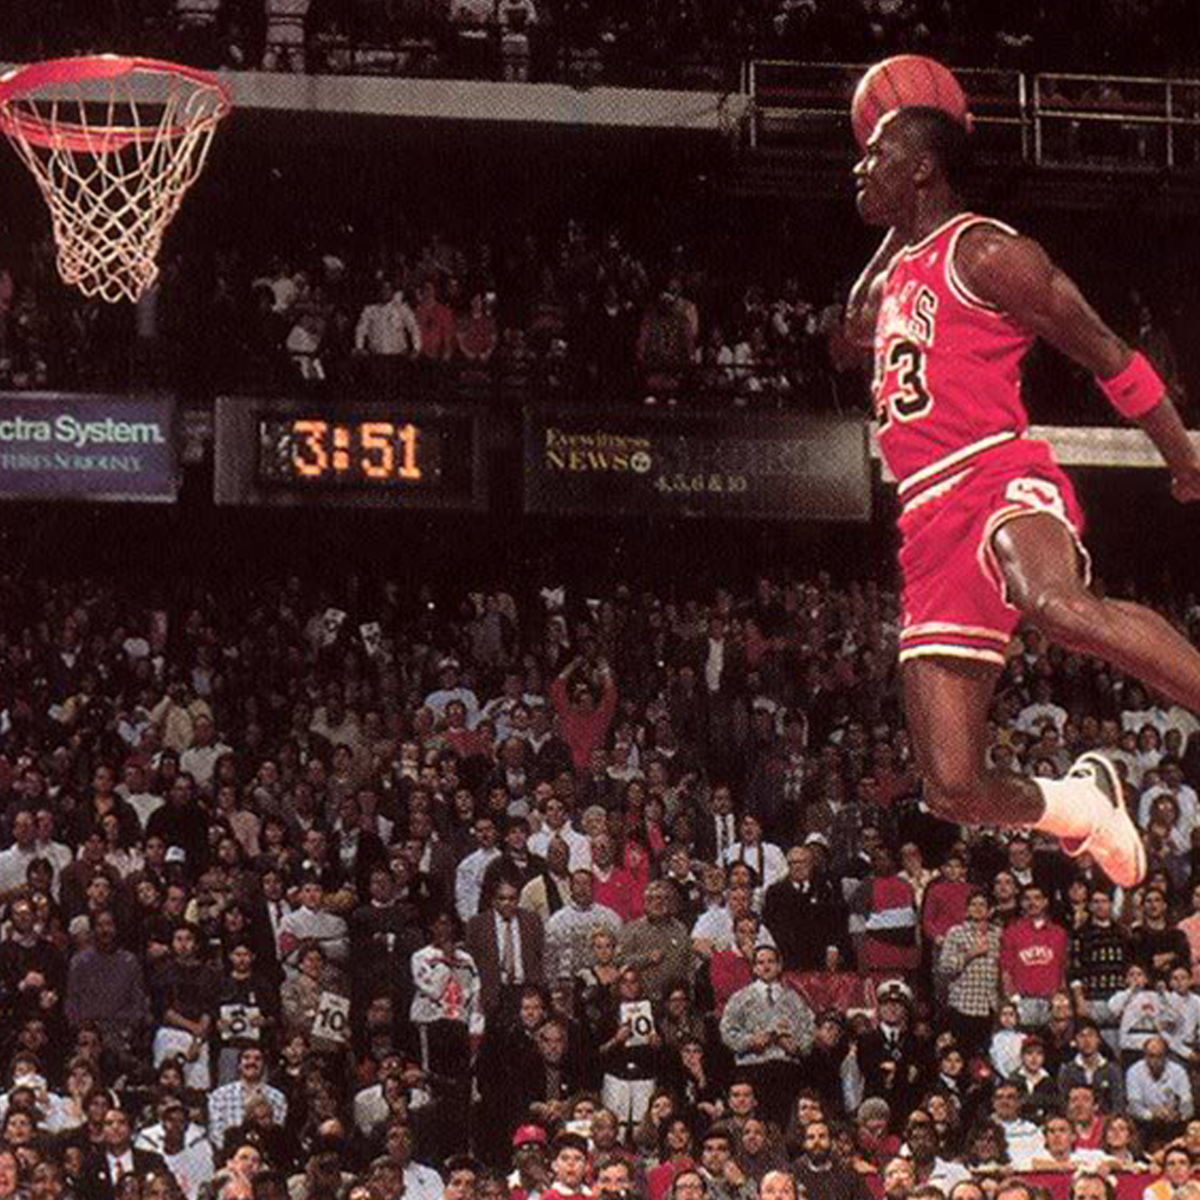 Michael Jordan's famous dunk where he seemed like flying.